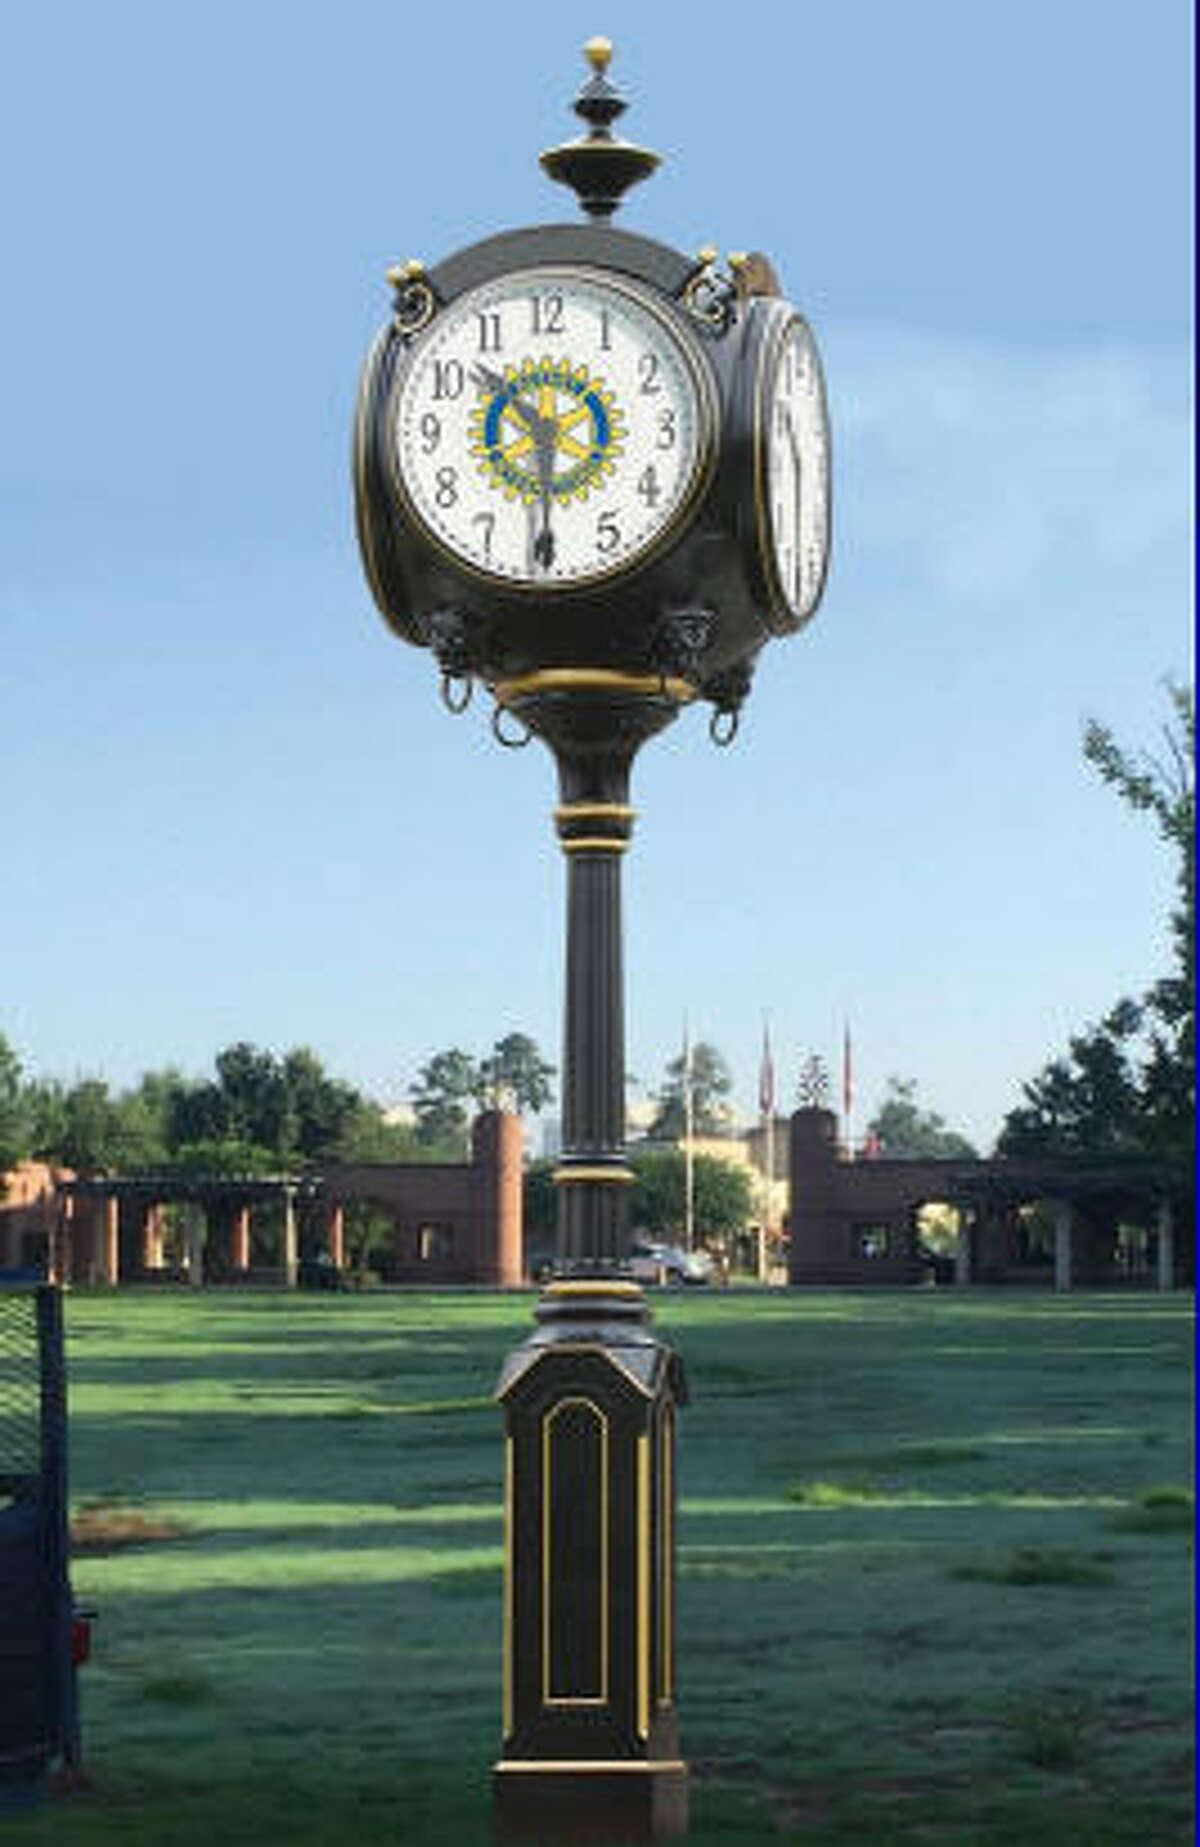 Clocks are off Our clocks are not exactly tuned to solar time, so two weeks before the solstice the solar noon is at 11:52 a.m. Sunsets are actually earlier (by the clock) before the solstice, and the sunrises are later for a few weeks after.